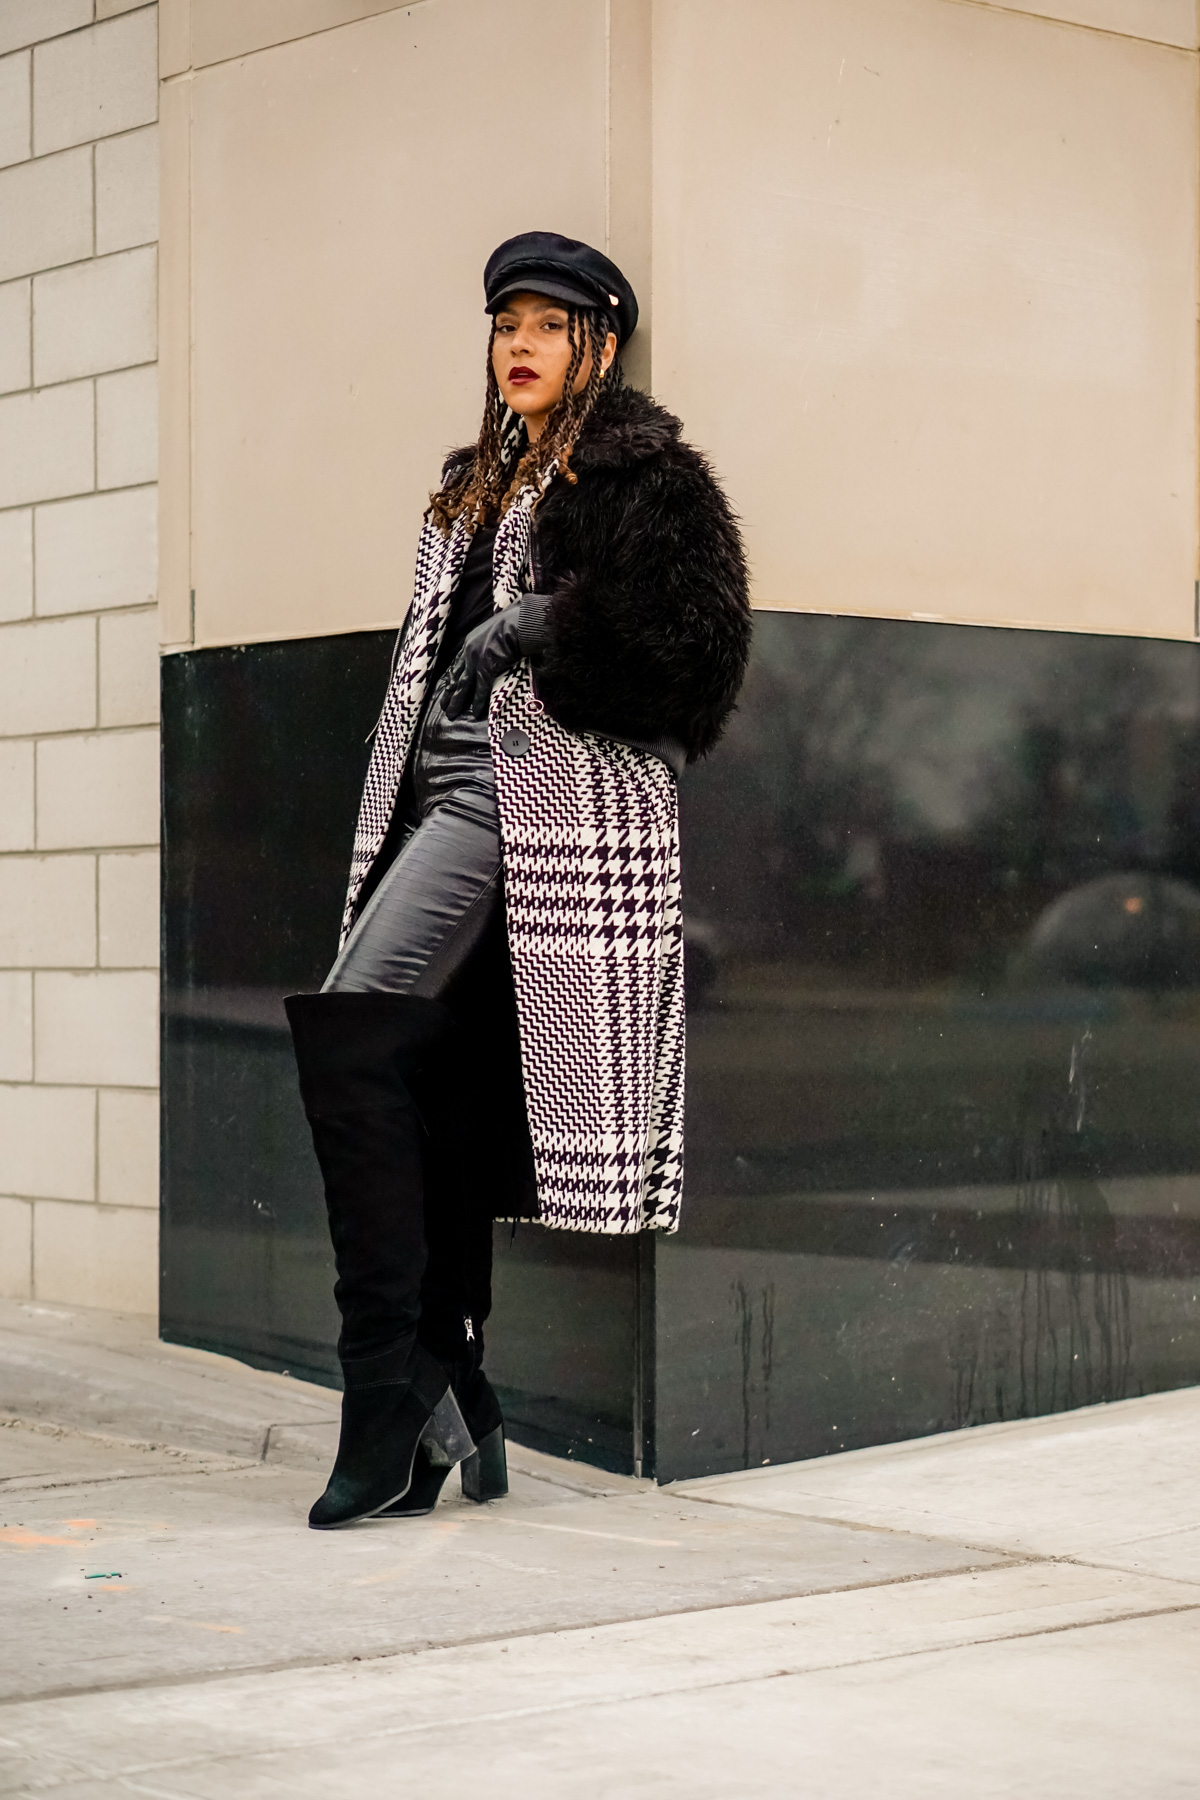 houndstooth coat outfit, black fashion blogger, houndstooth coat outfit street style, winter fashion black girl, spring fashion, ways to wear